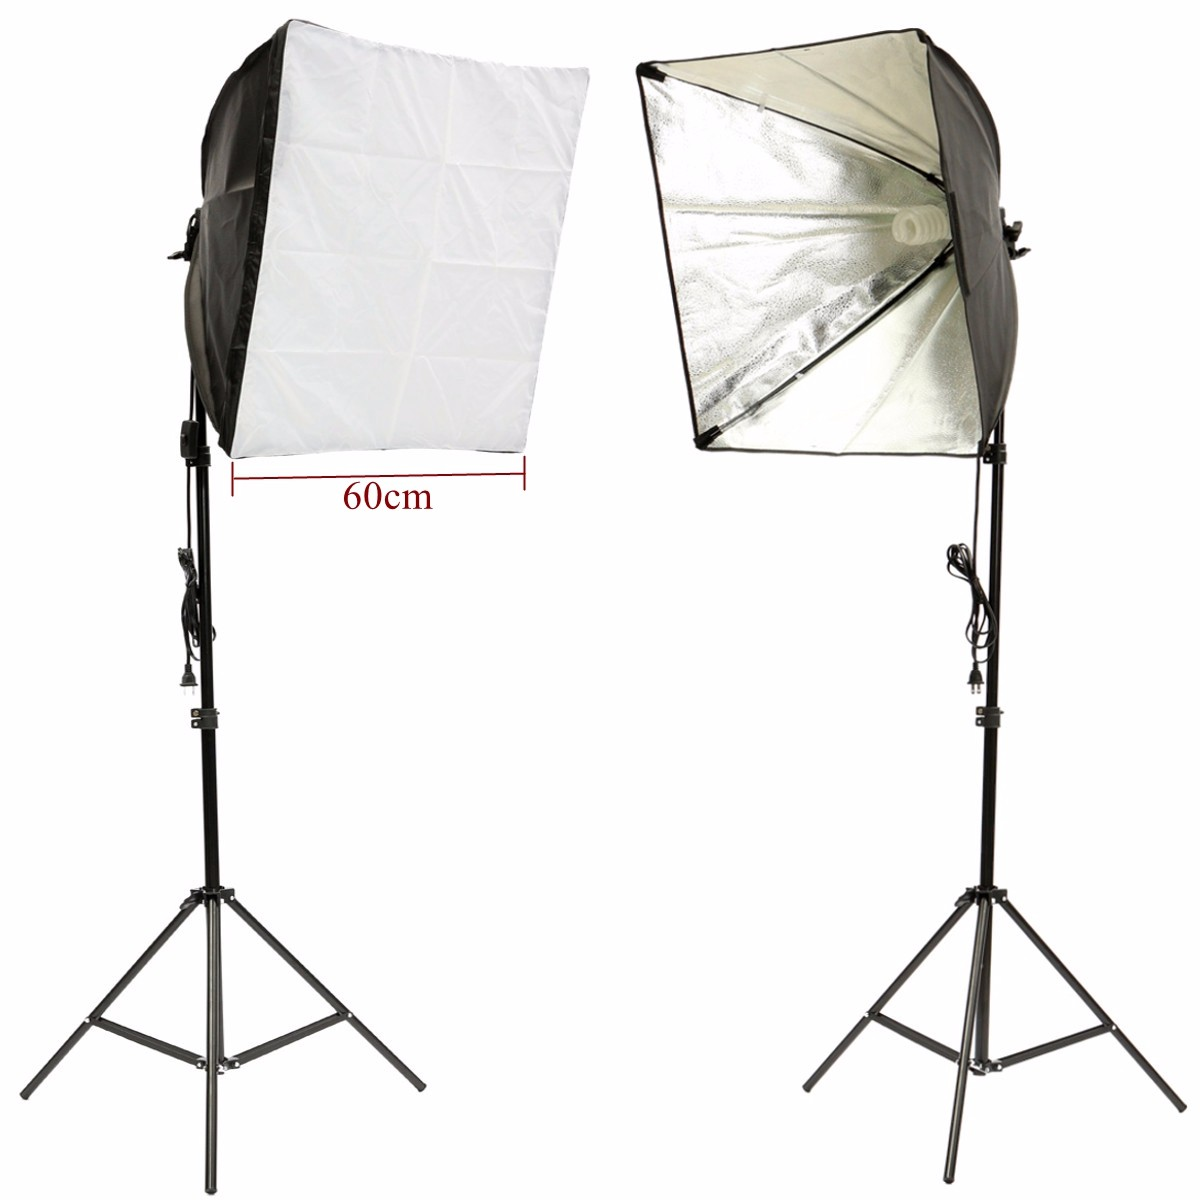 Softbox Light Kit Photo Studio Video Stand Photography Continuous Lighting Kit